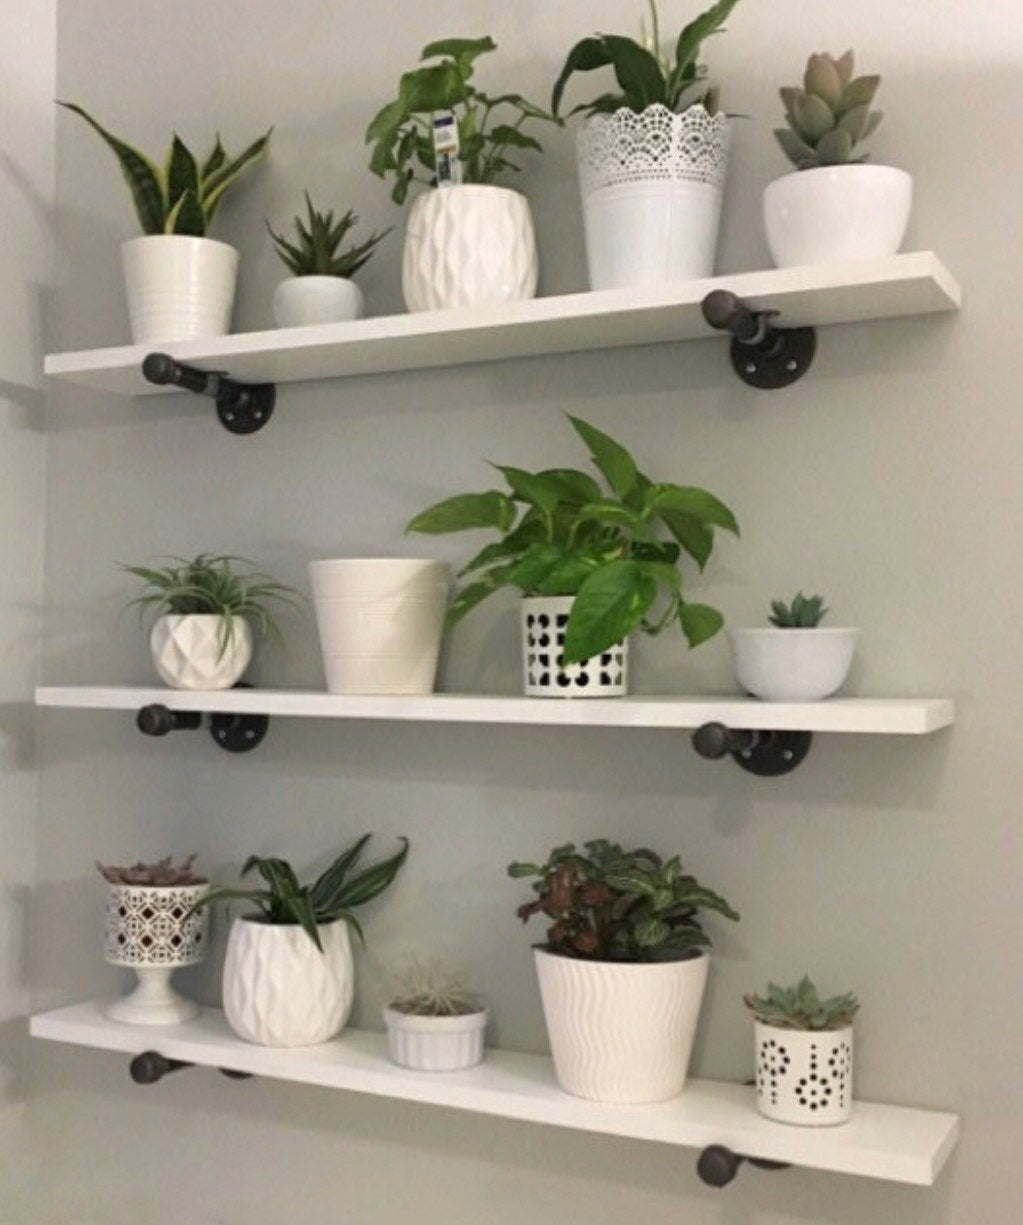 open shelving industrial shelf pipe white floating etsy fullxfull shelves bathroom jysk hand forged brackets hidden screwfix what wall solid oak mantelpiece stone fireplace rustic